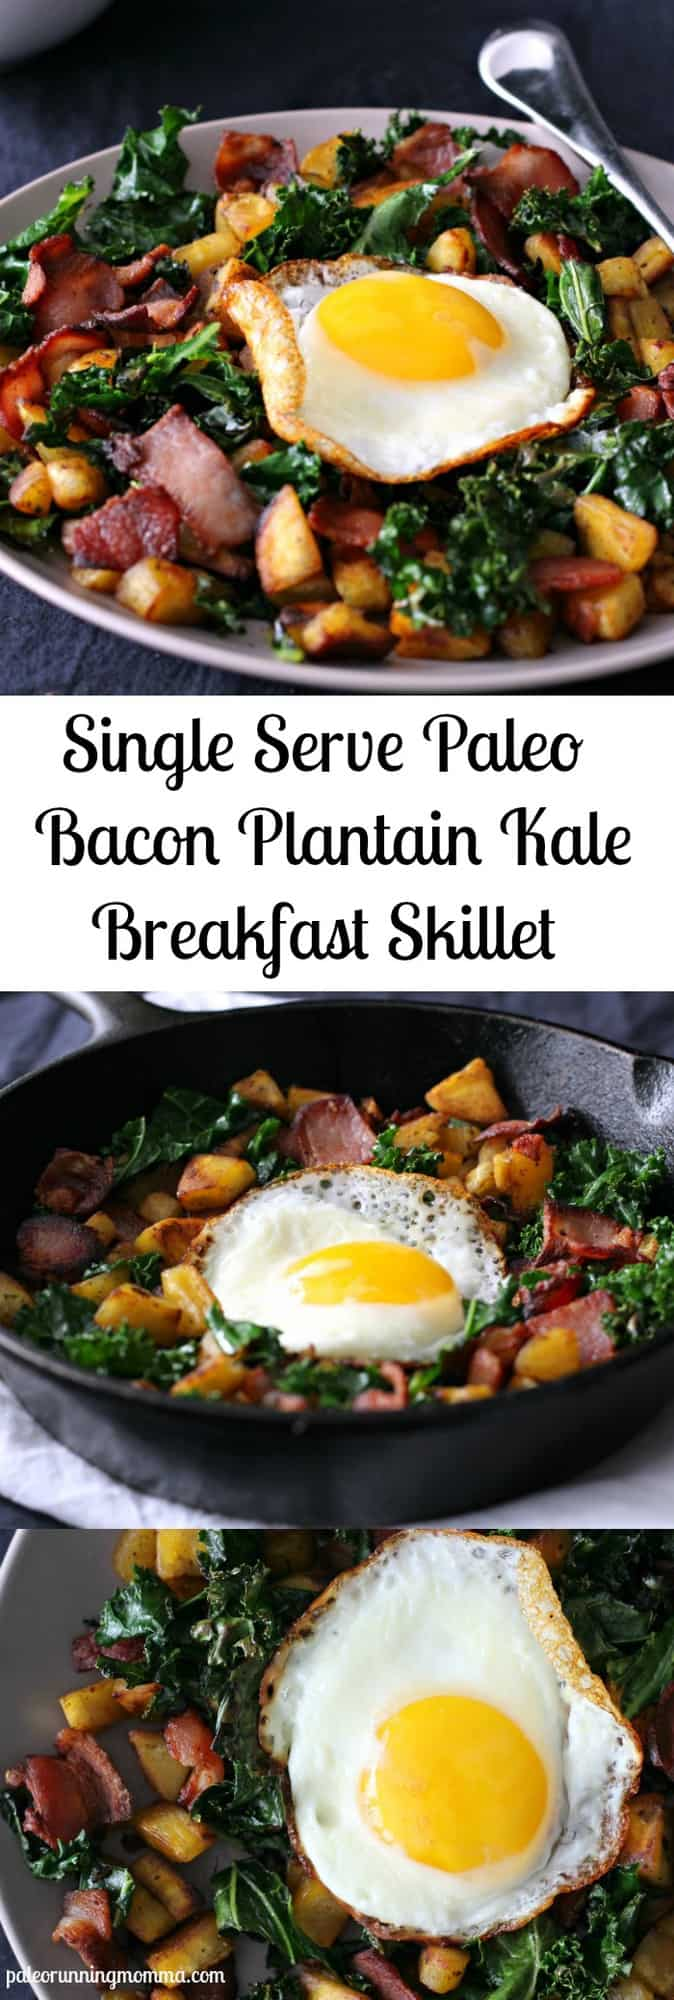 Single Serve Paleo Bacon Plantain Kale Breakfast Skillet - #whole30 #grainfree #paleo - easy, quick, 3 ingredients plus an egg!